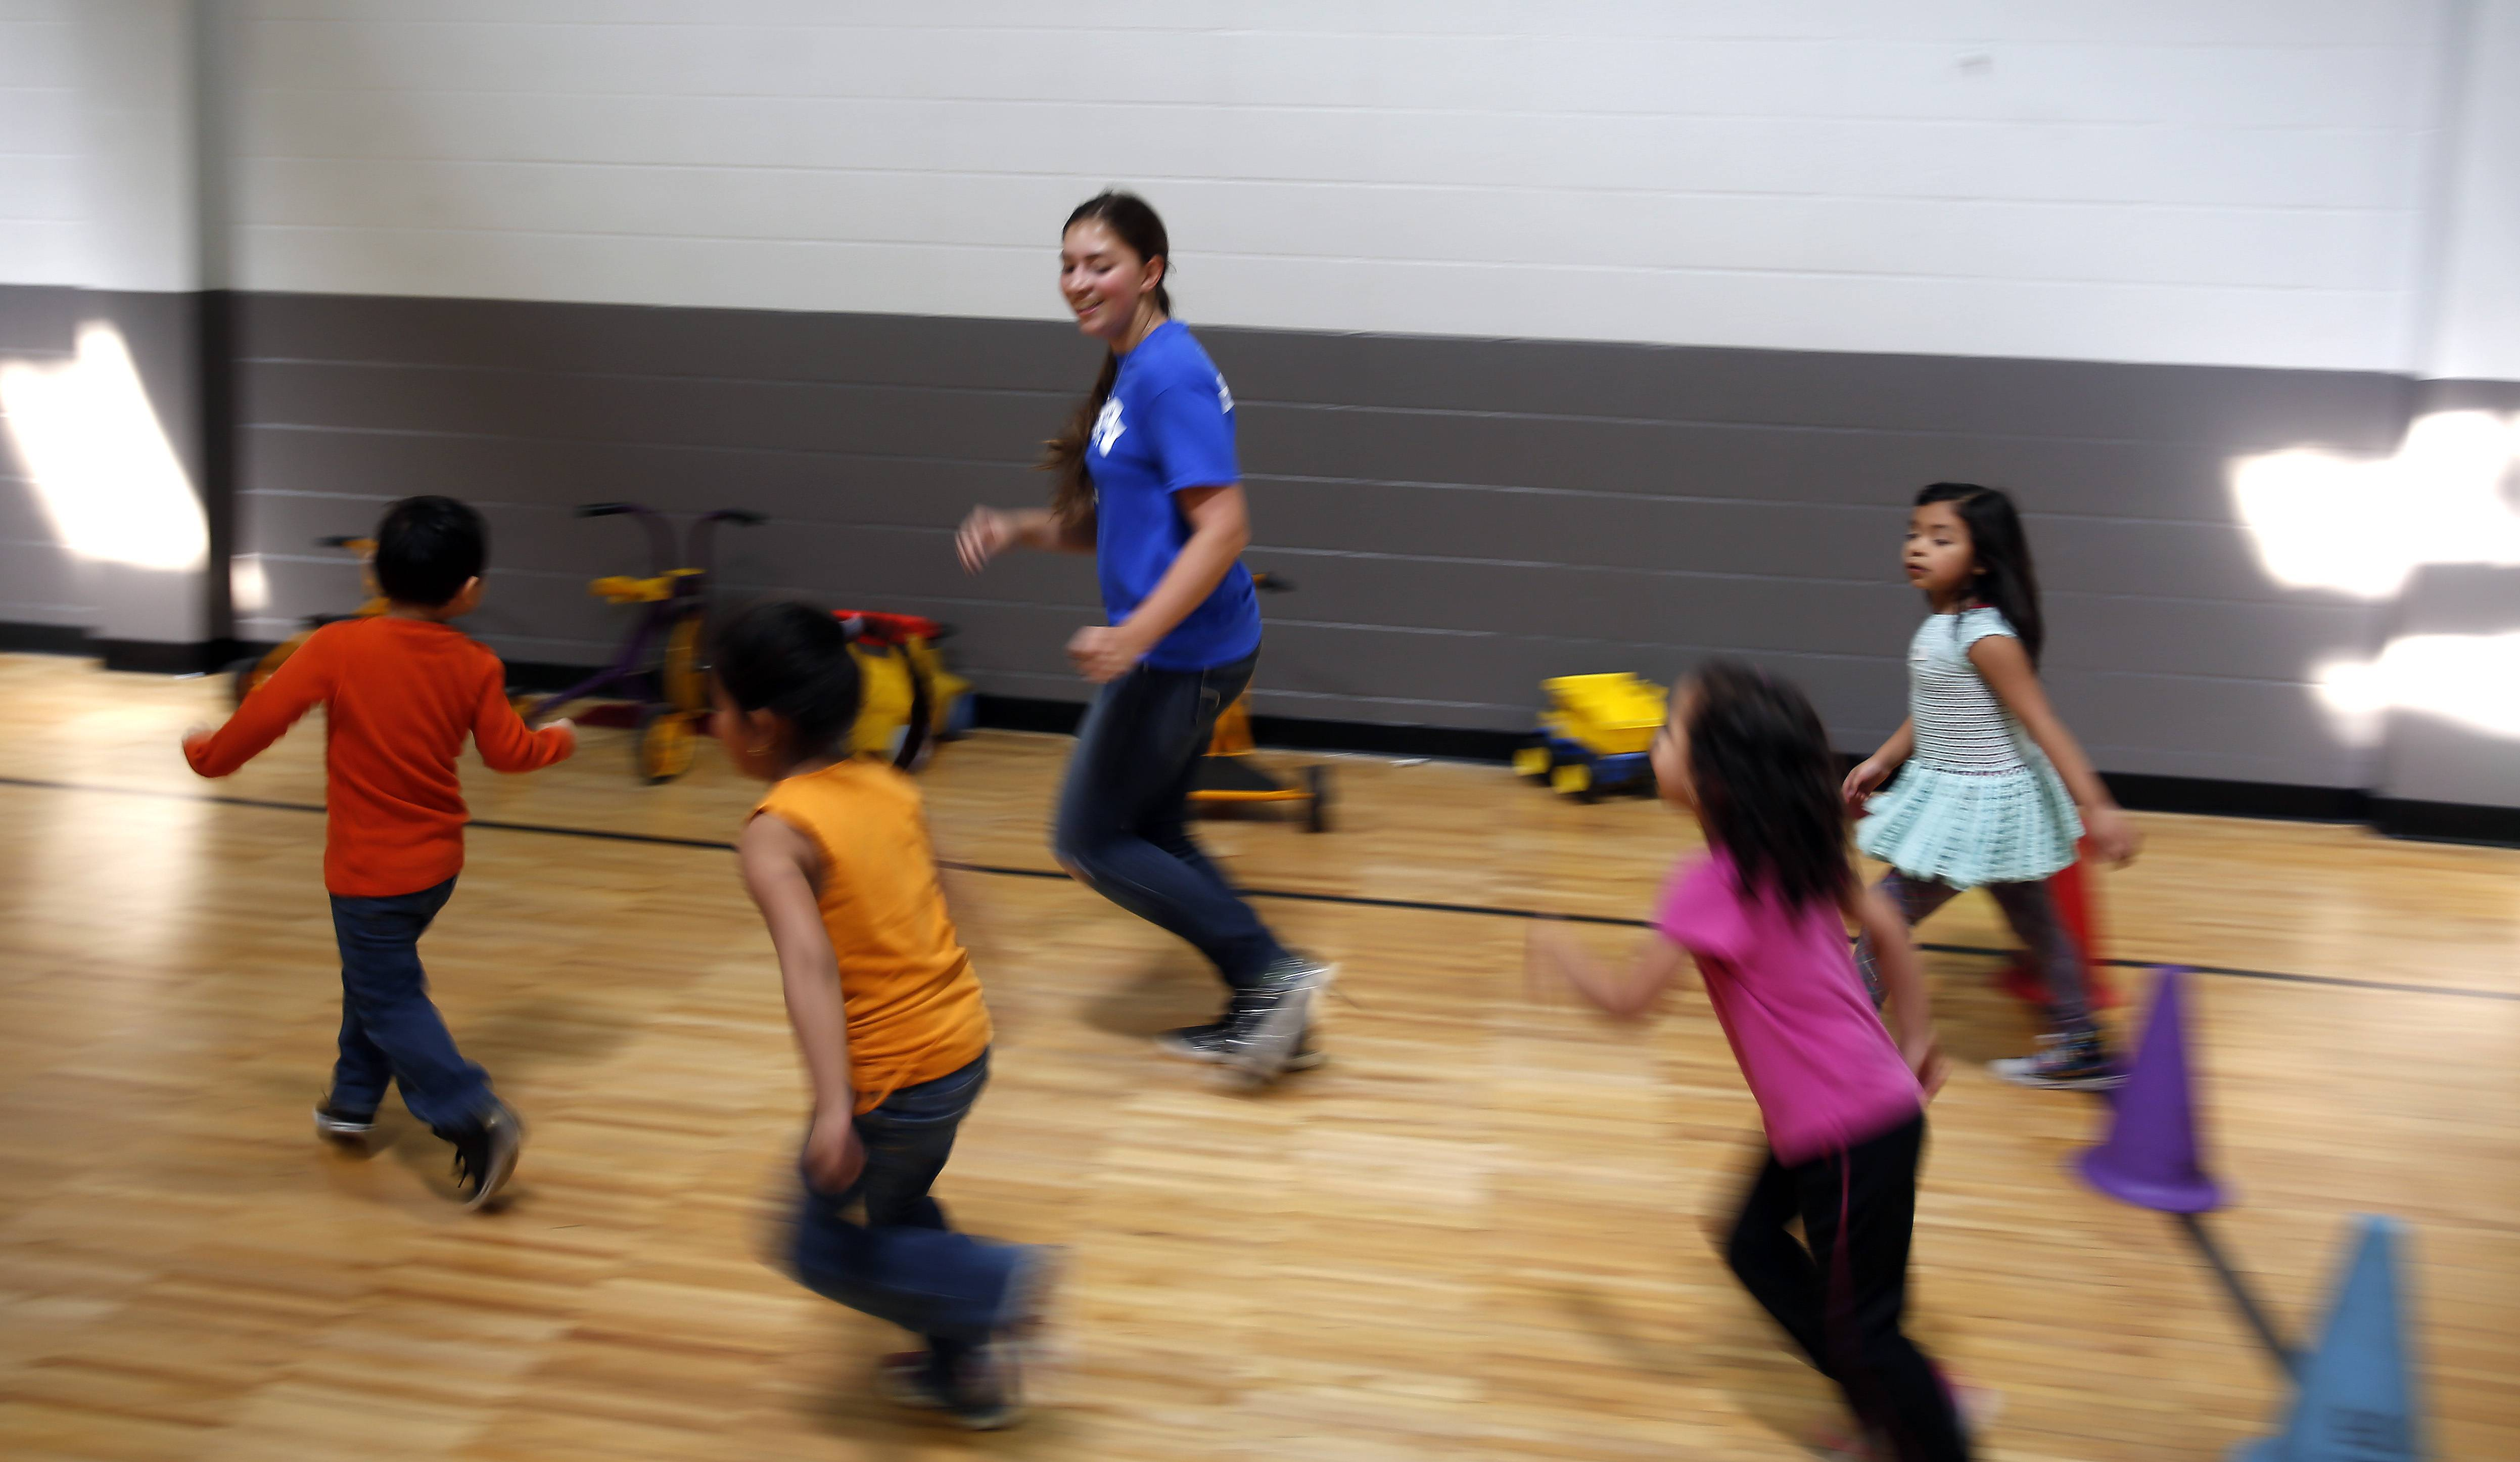 Gabrielle Grinnell, 14, a Westminster Christian School student, attempts to tire out a group of preschool children Thursday at the YWCA in Elgin. It was Westminster's second annual Give Back Day, where students and volunteers worked at different area locations to help out in any way they could.